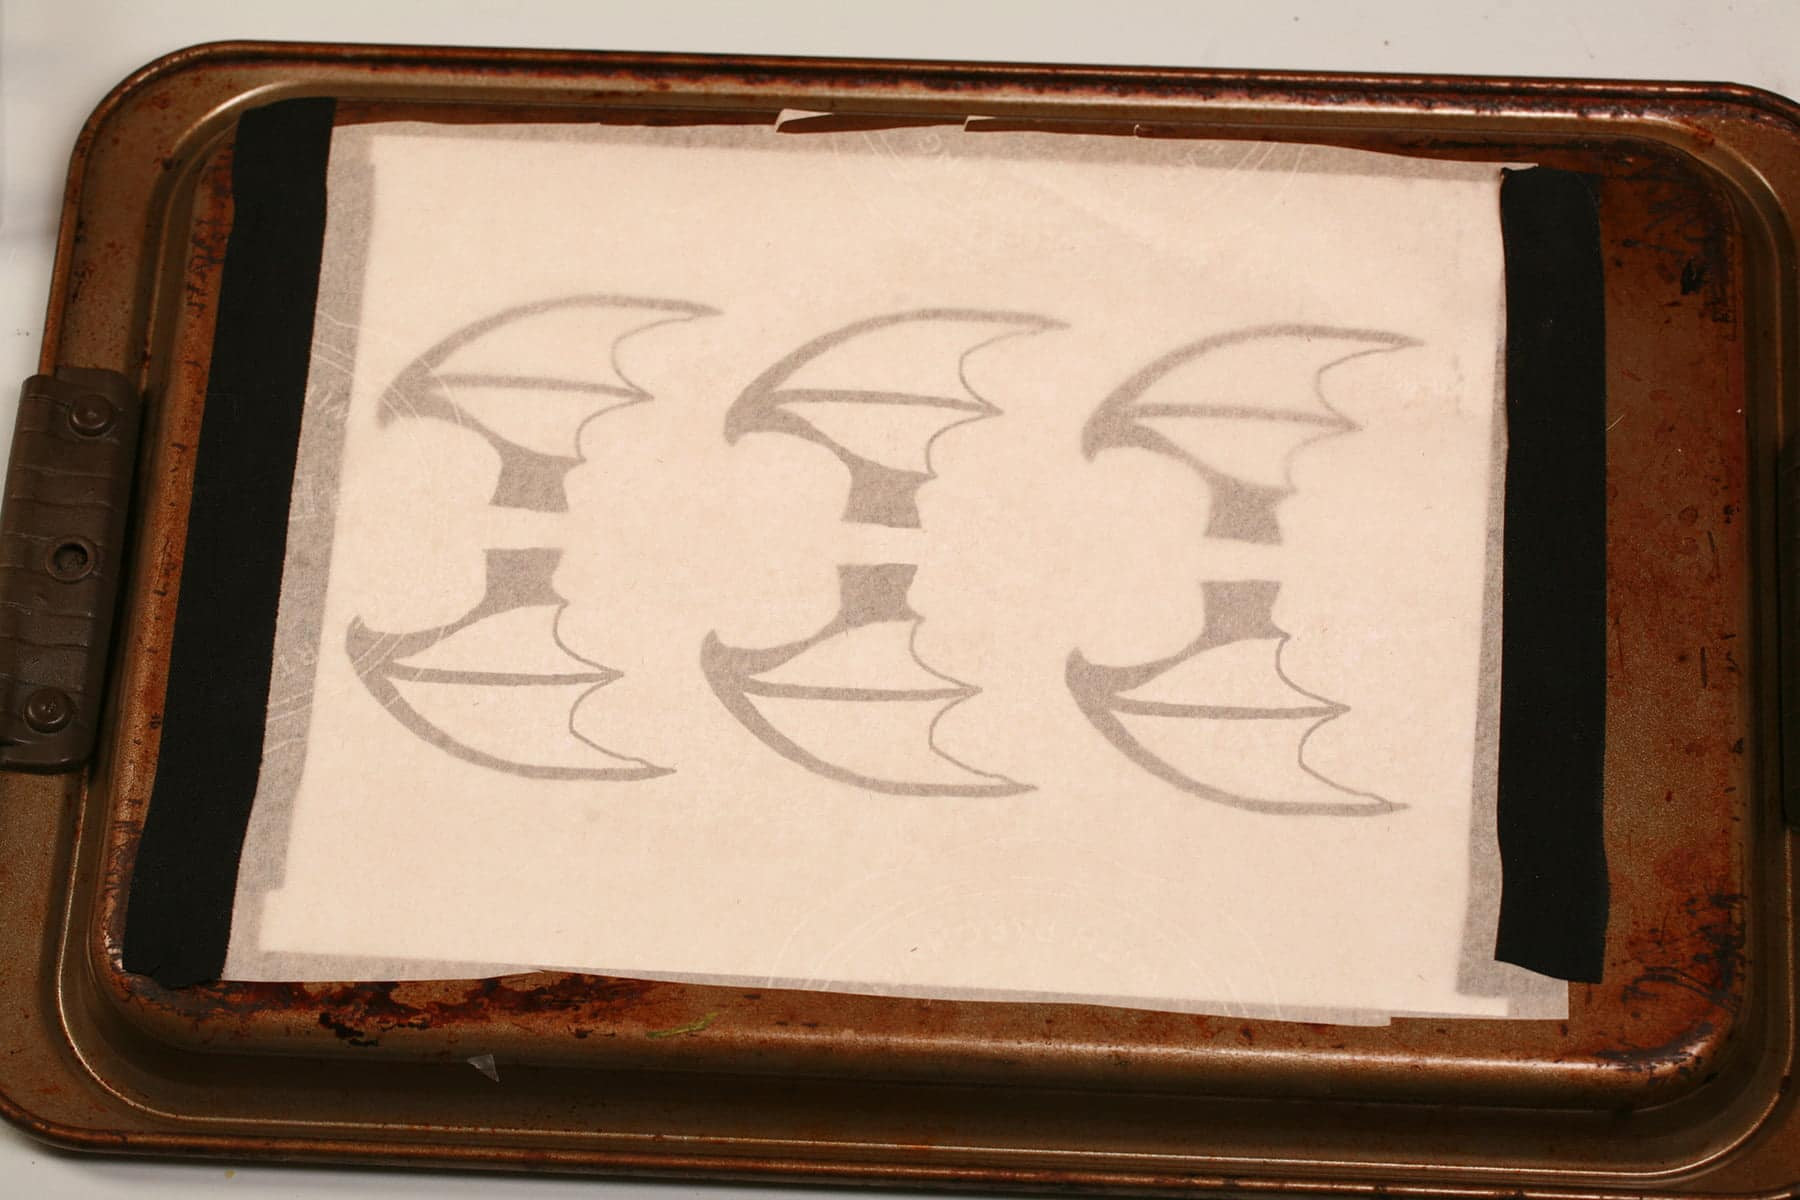 A printout of 3 pairs of bat wings are taped onto the back of a baking sheet, then covered with a sheet of parchment paper.